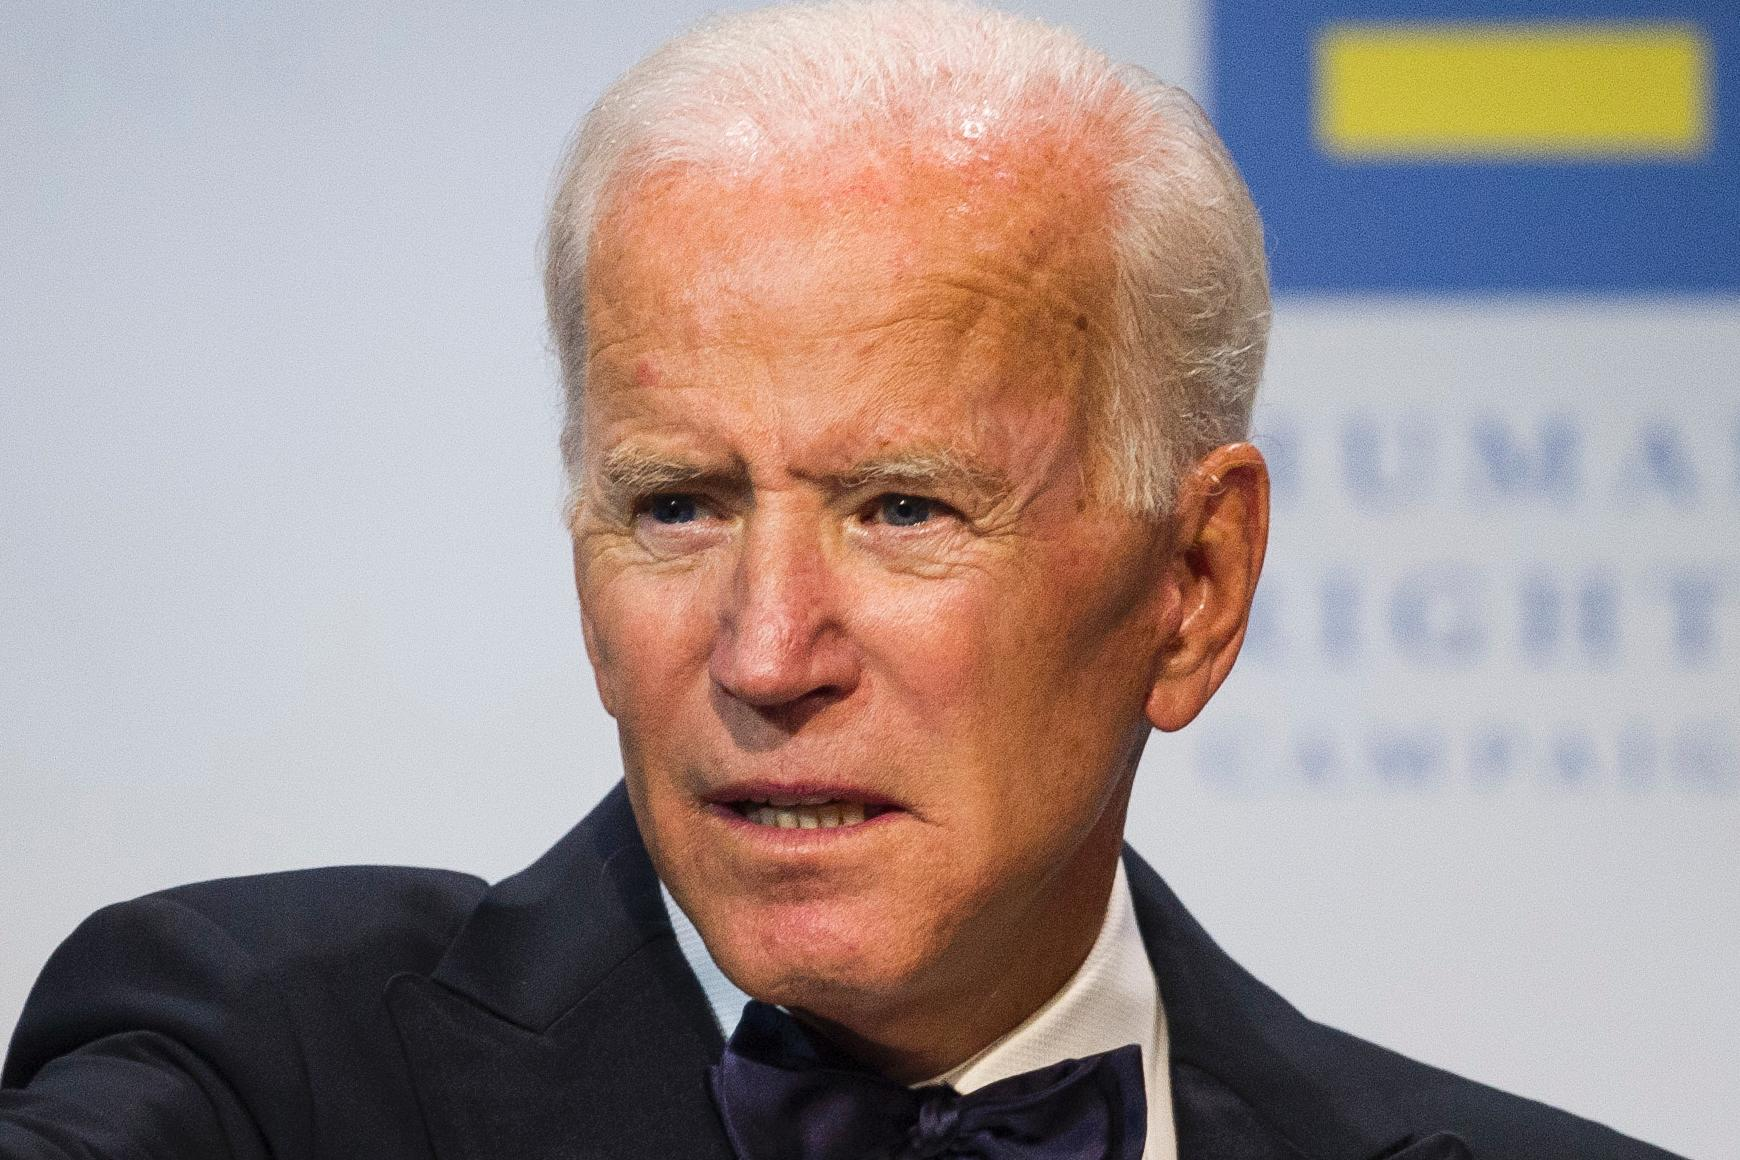 washingtonpost.com - Laurie McGinley - Biden pushes for progress at cancer summit